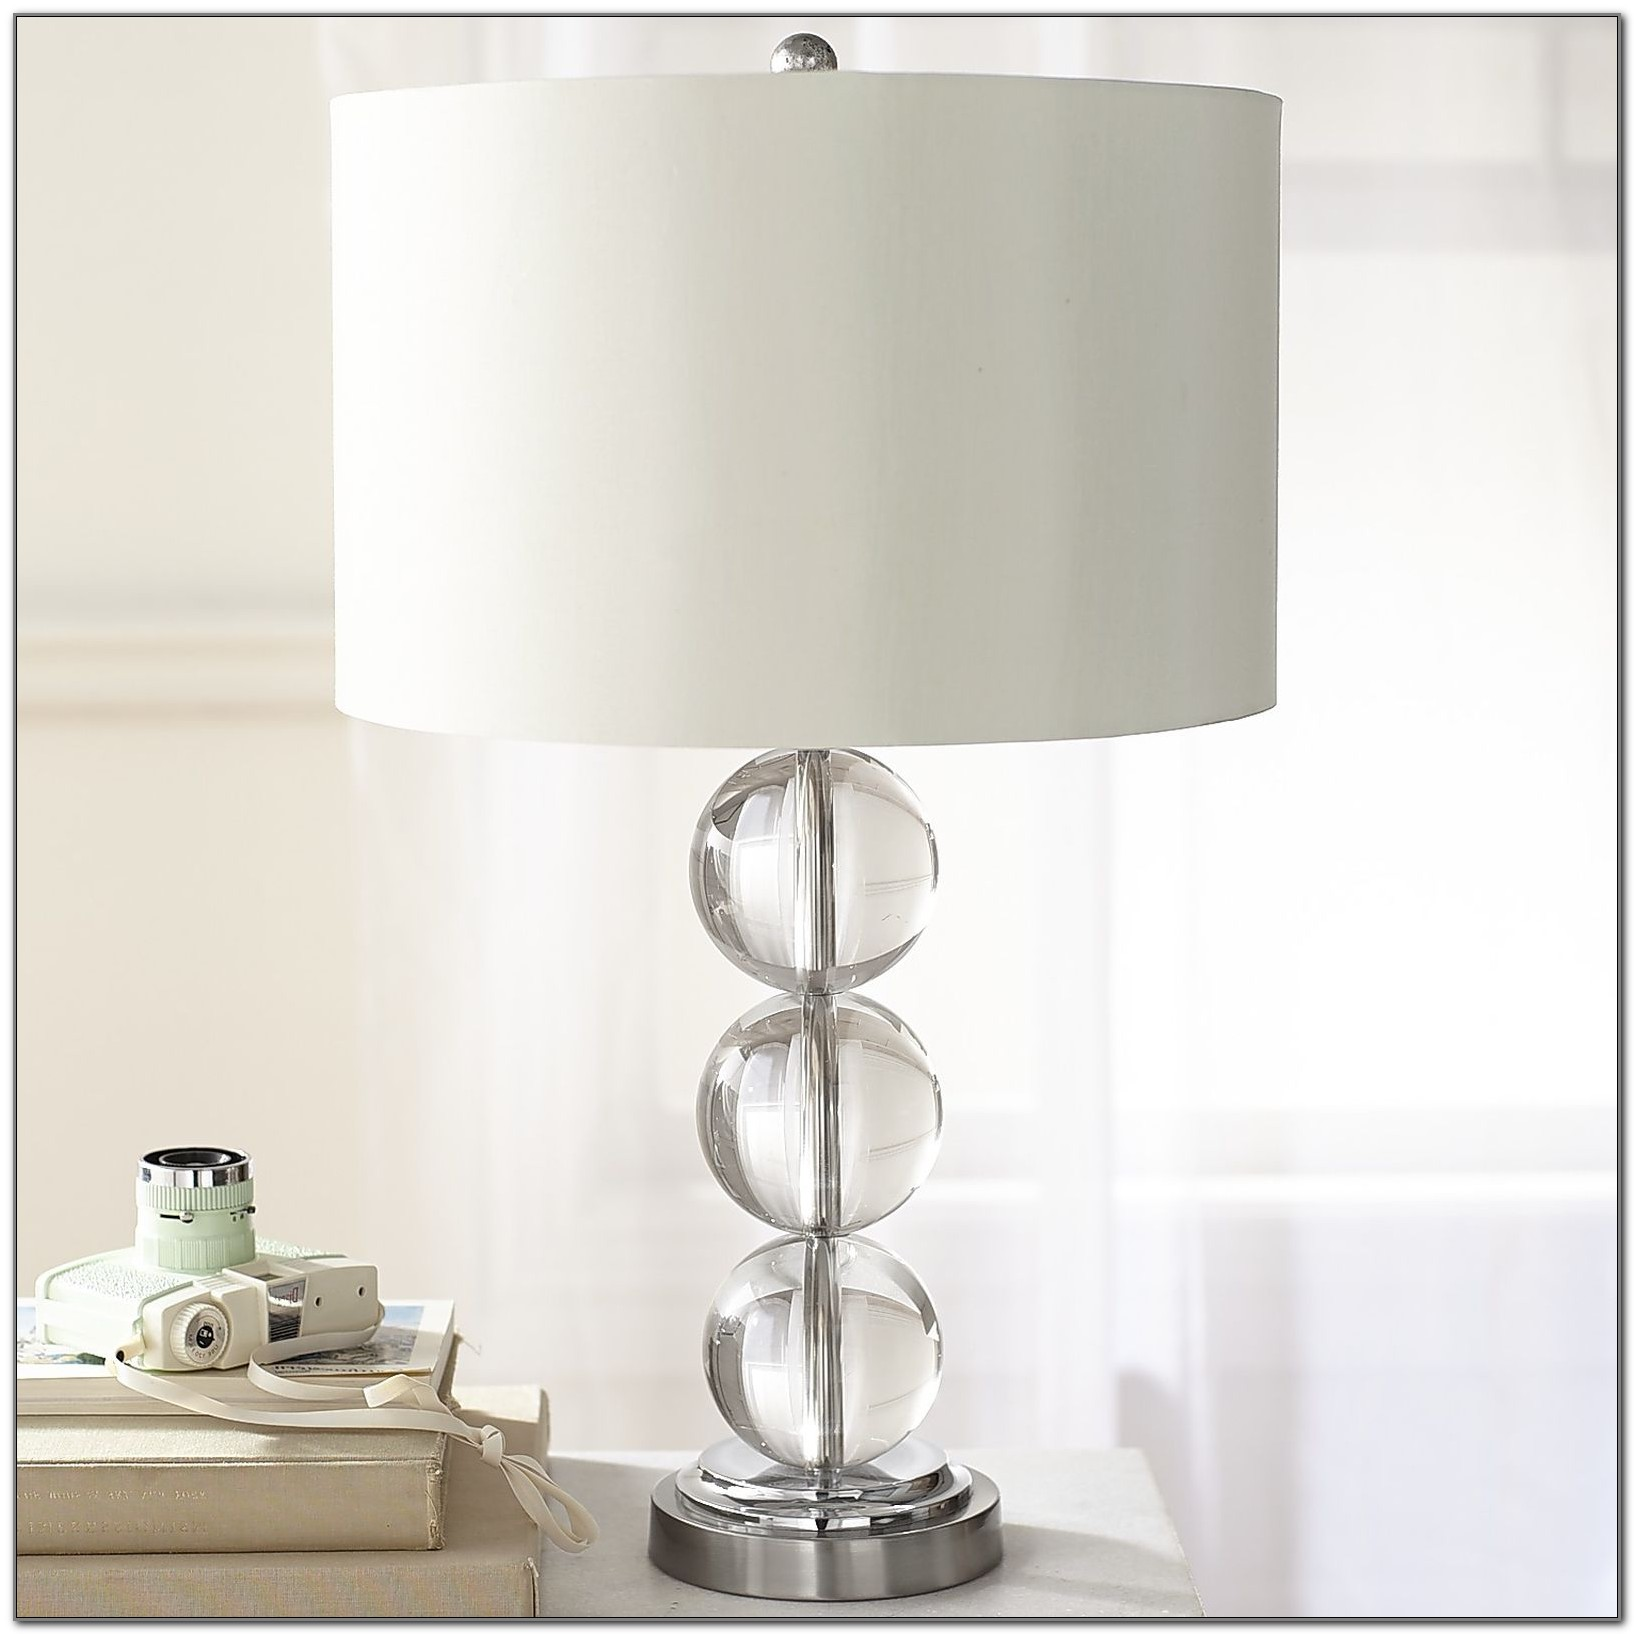 Pier 1 Serena Table Lamp